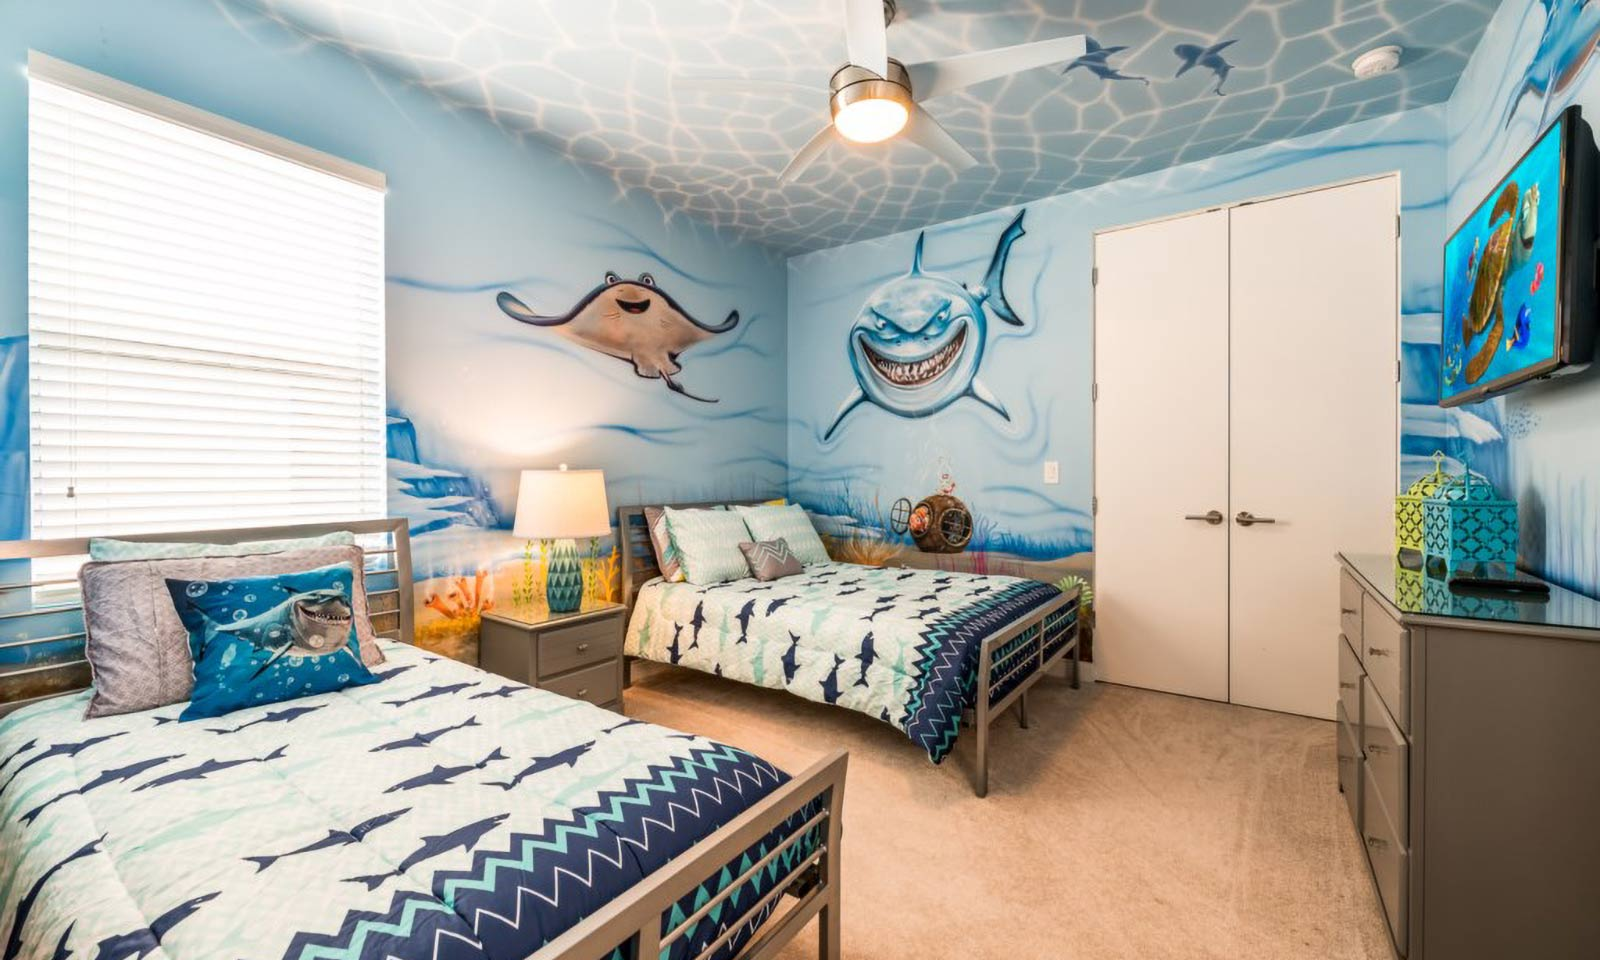 [amenities:Themed-Bedrooms:1] Themed Bedroom